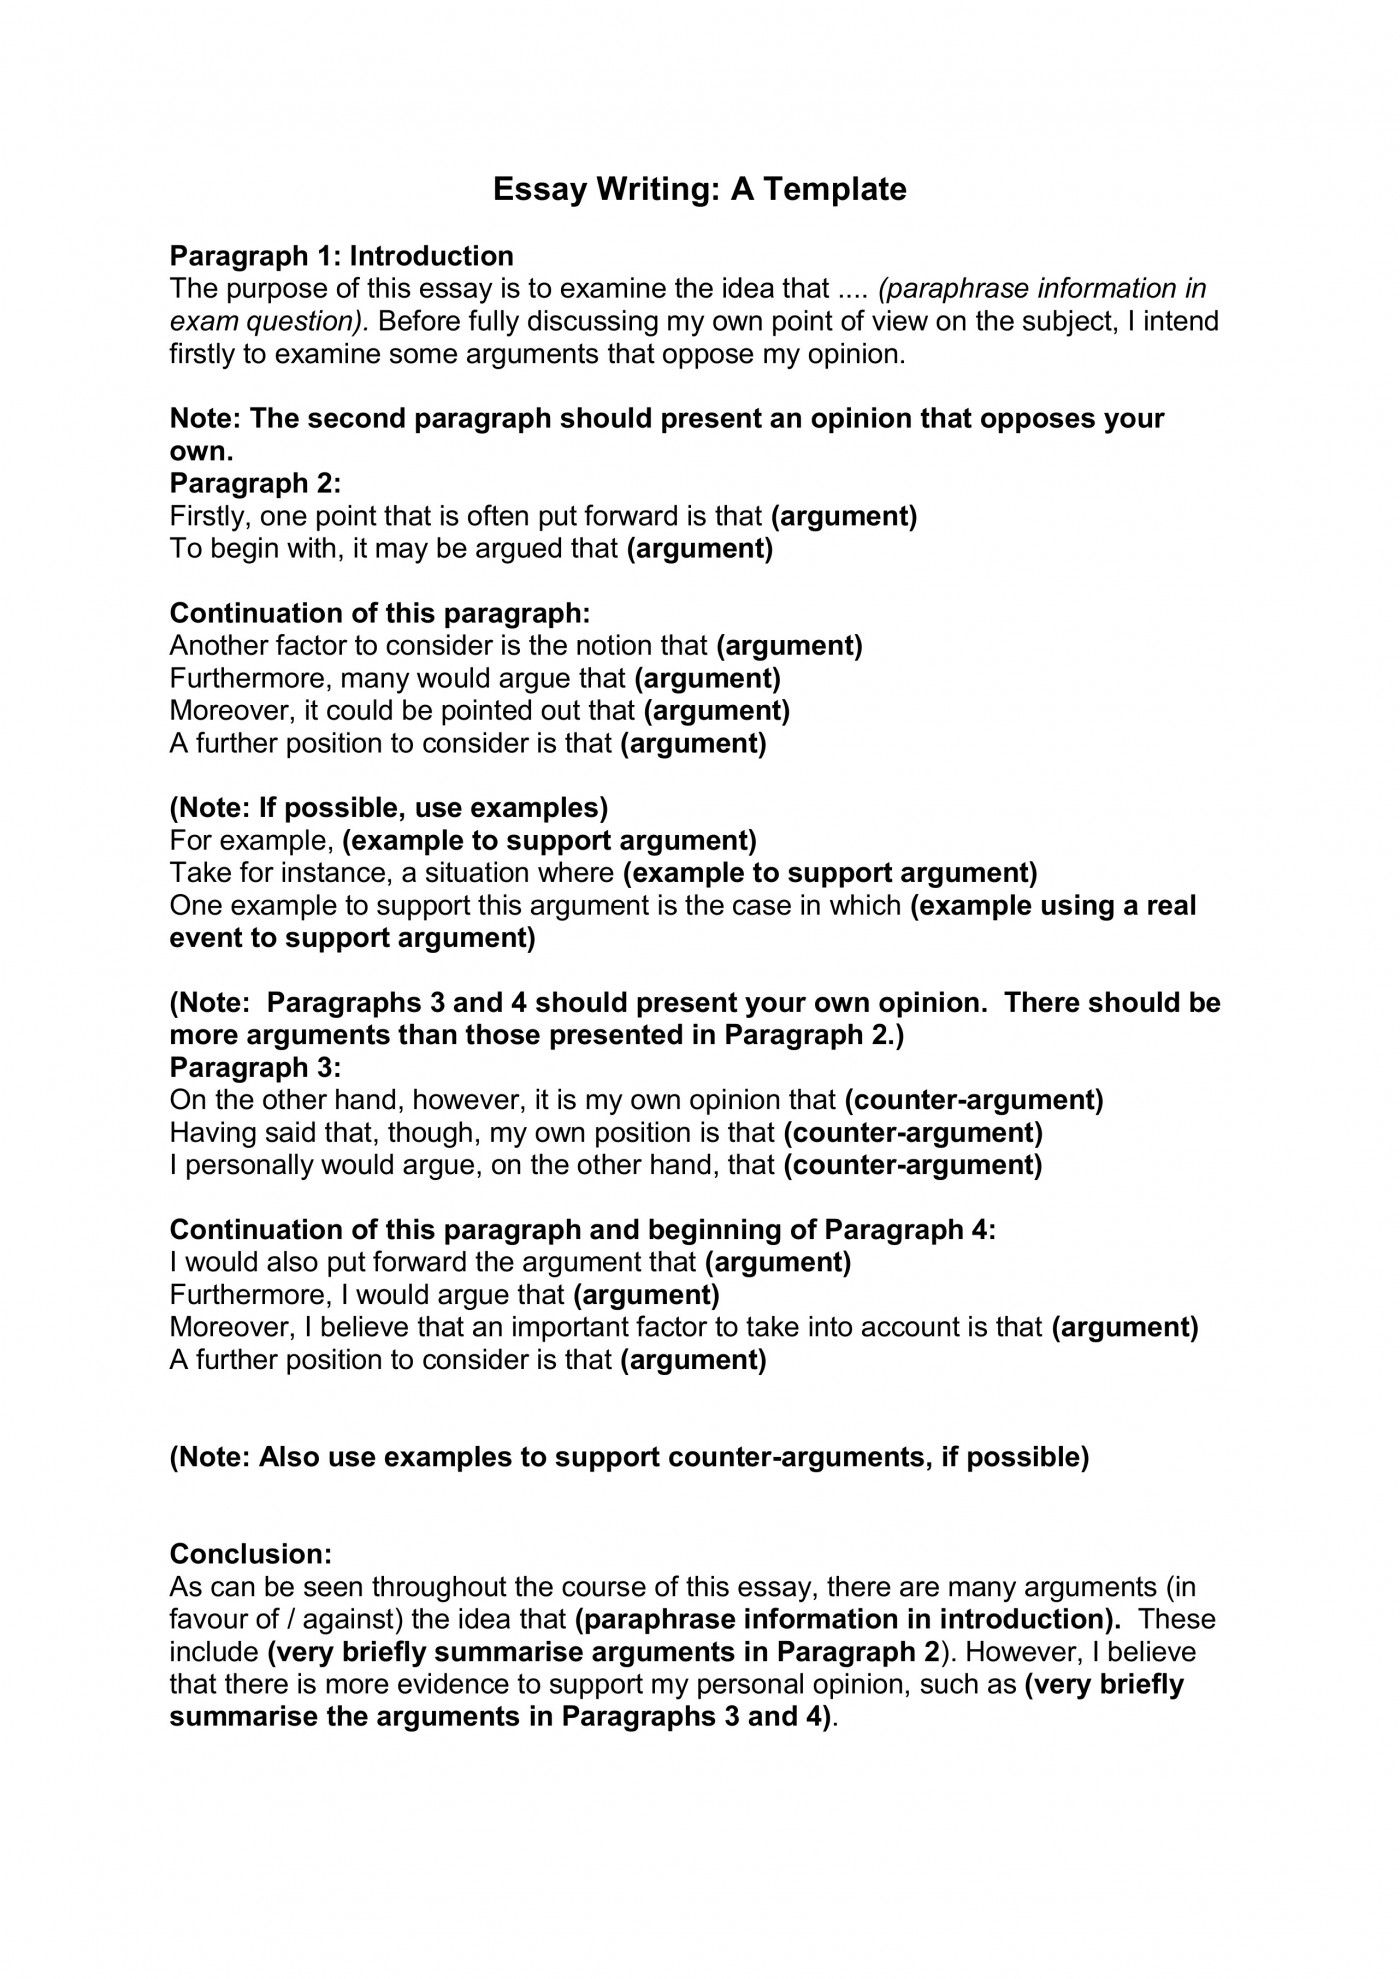 006 Essay Writing Template For Part How To Write An Opinion Unbelievable 3rd Grade College 1400